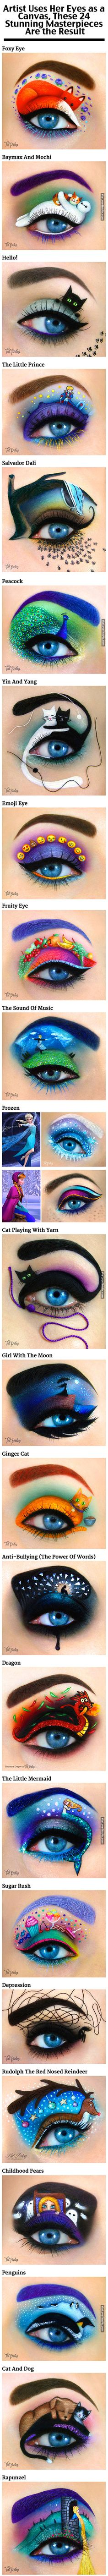 Artist Uses Her Eyes As A Canvas beautiful makeup art artistic amazing cosmetics makeup art